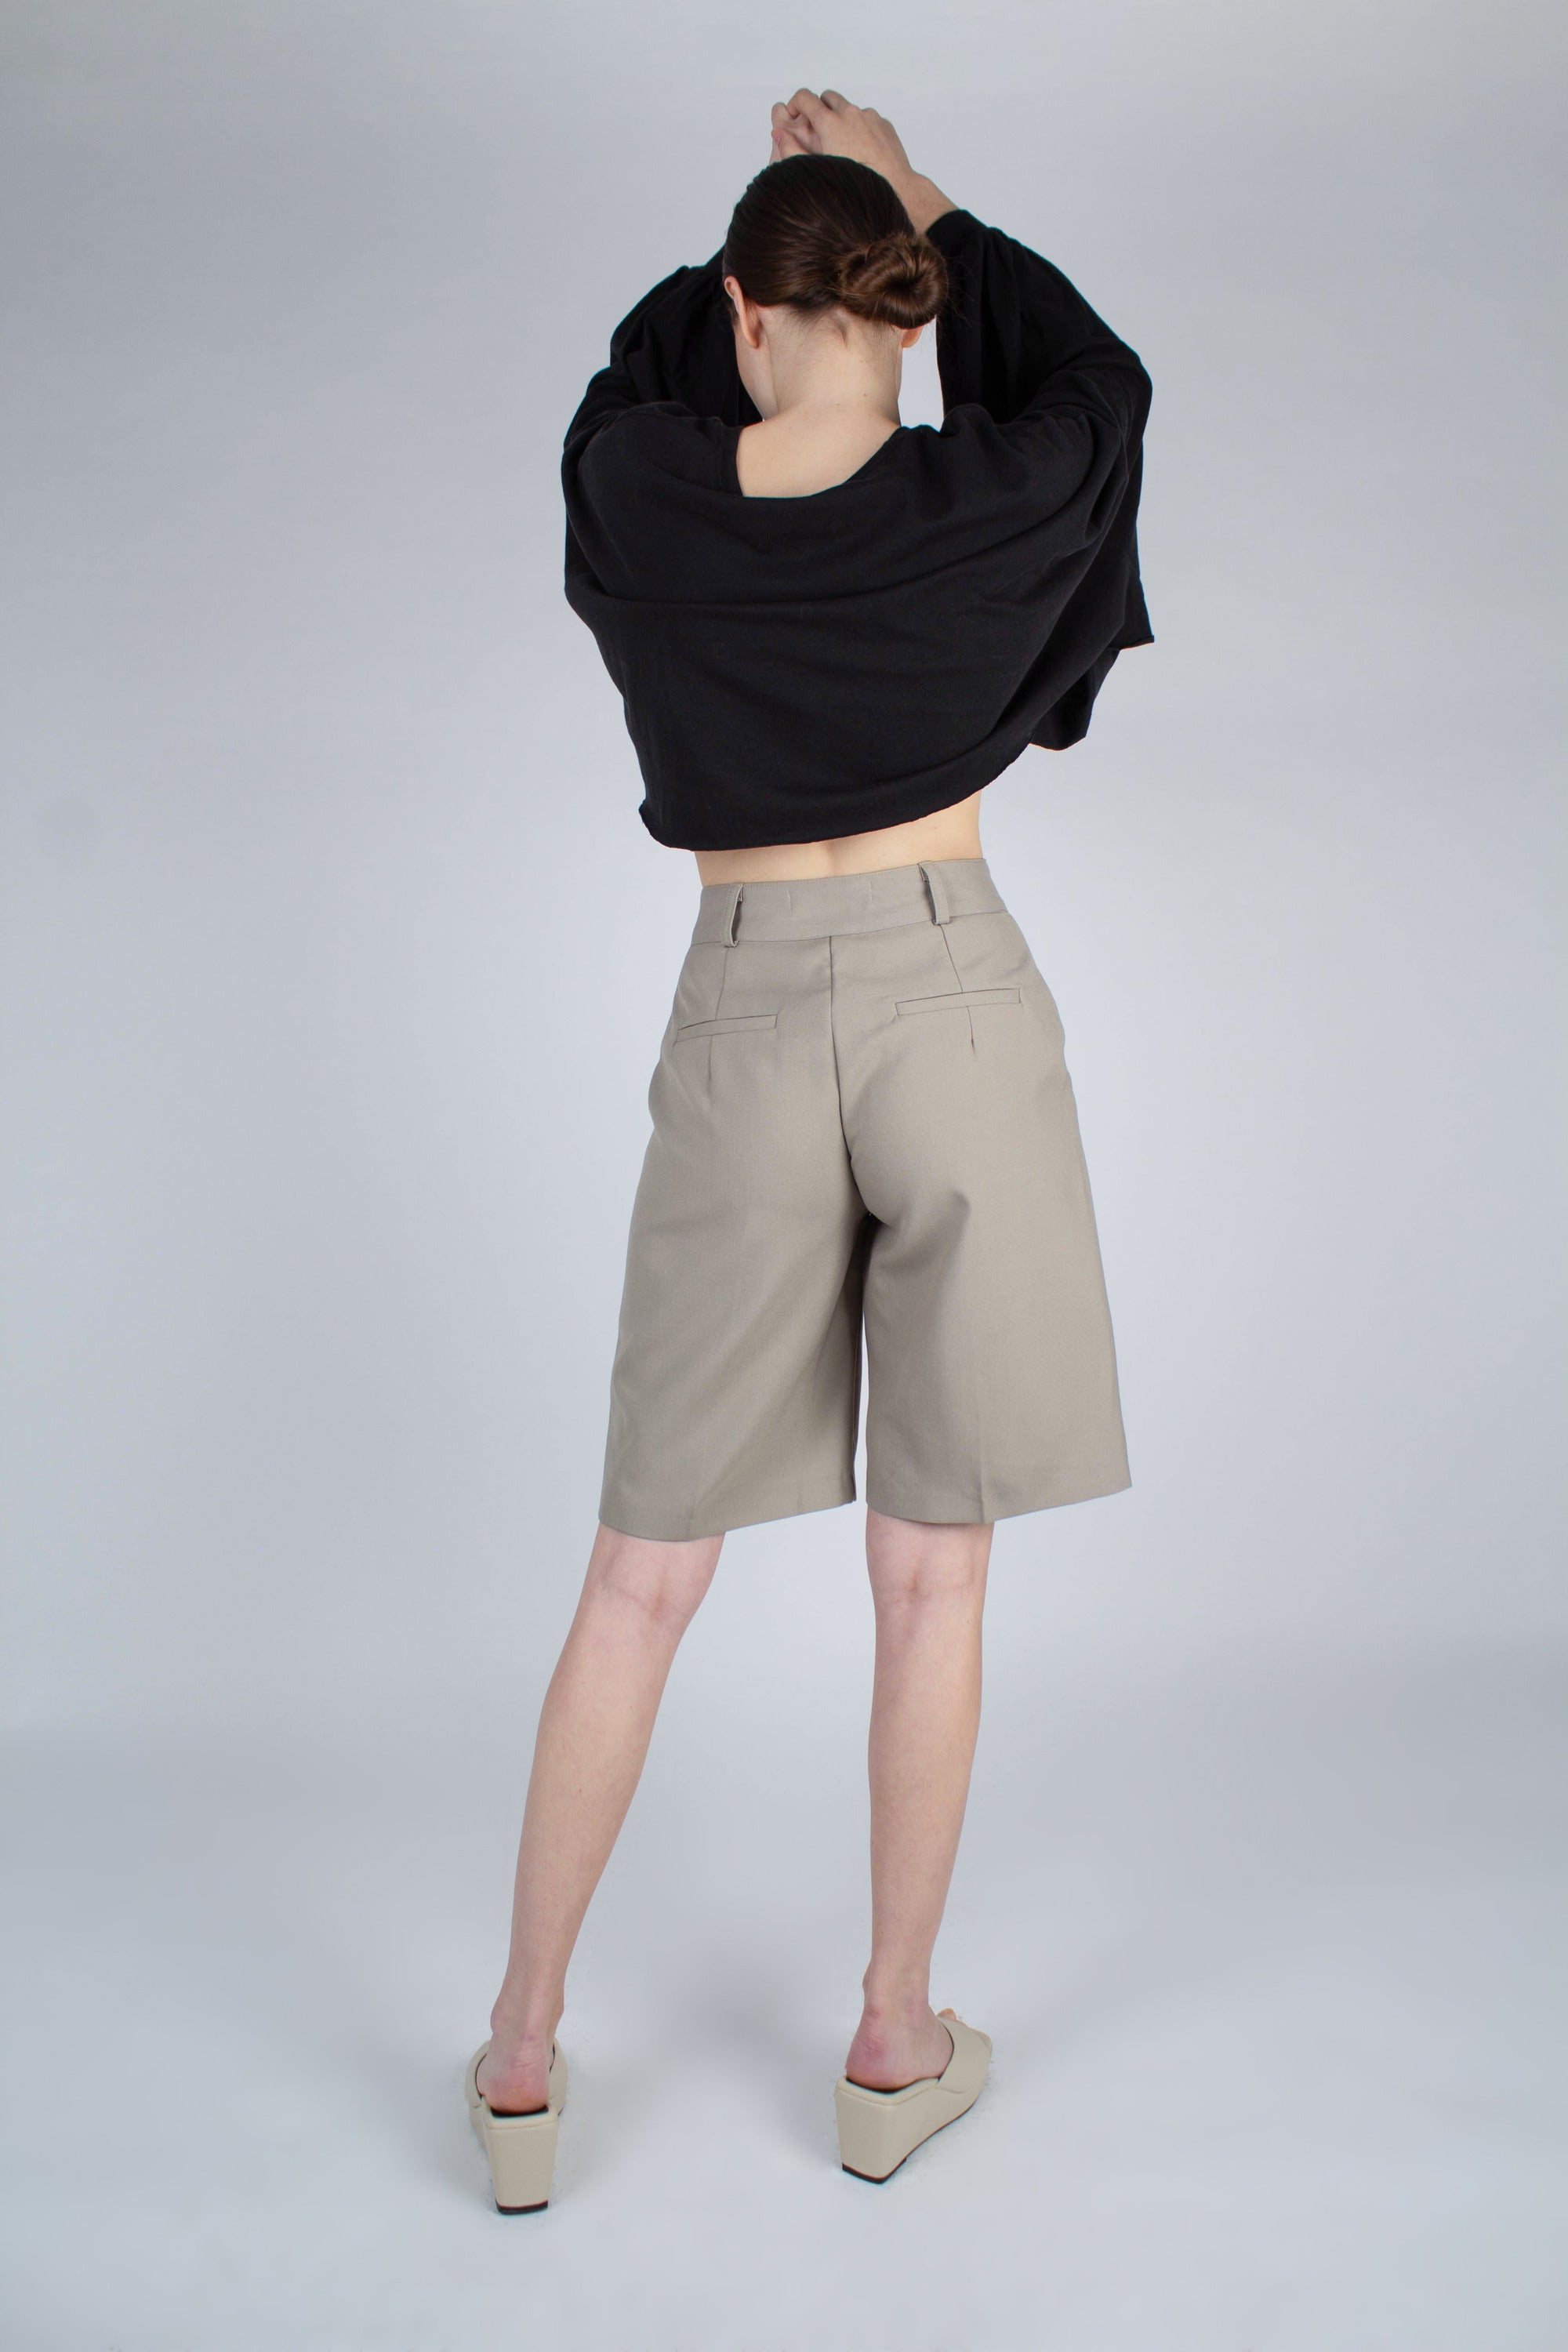 20610_Pale khaki tucked suit shorts_MFBBA1